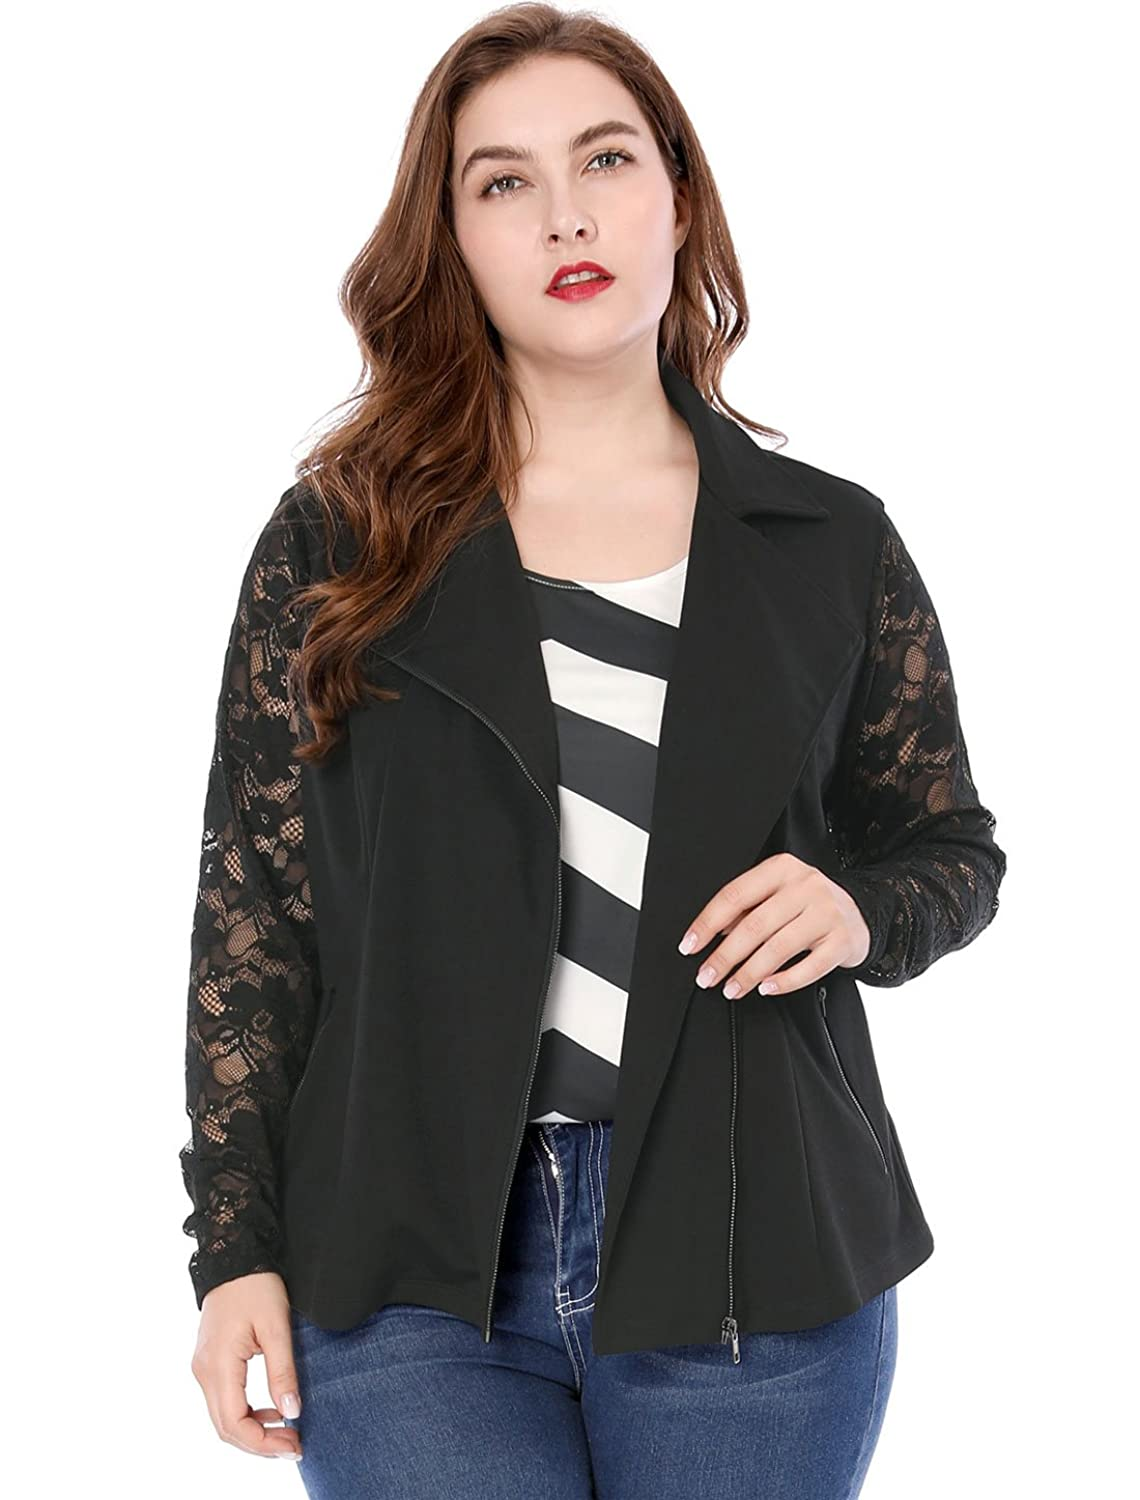 Agnes Orinda Women's Plus Size Lightweight Long Sleeves Lace Zip Moto Jacket